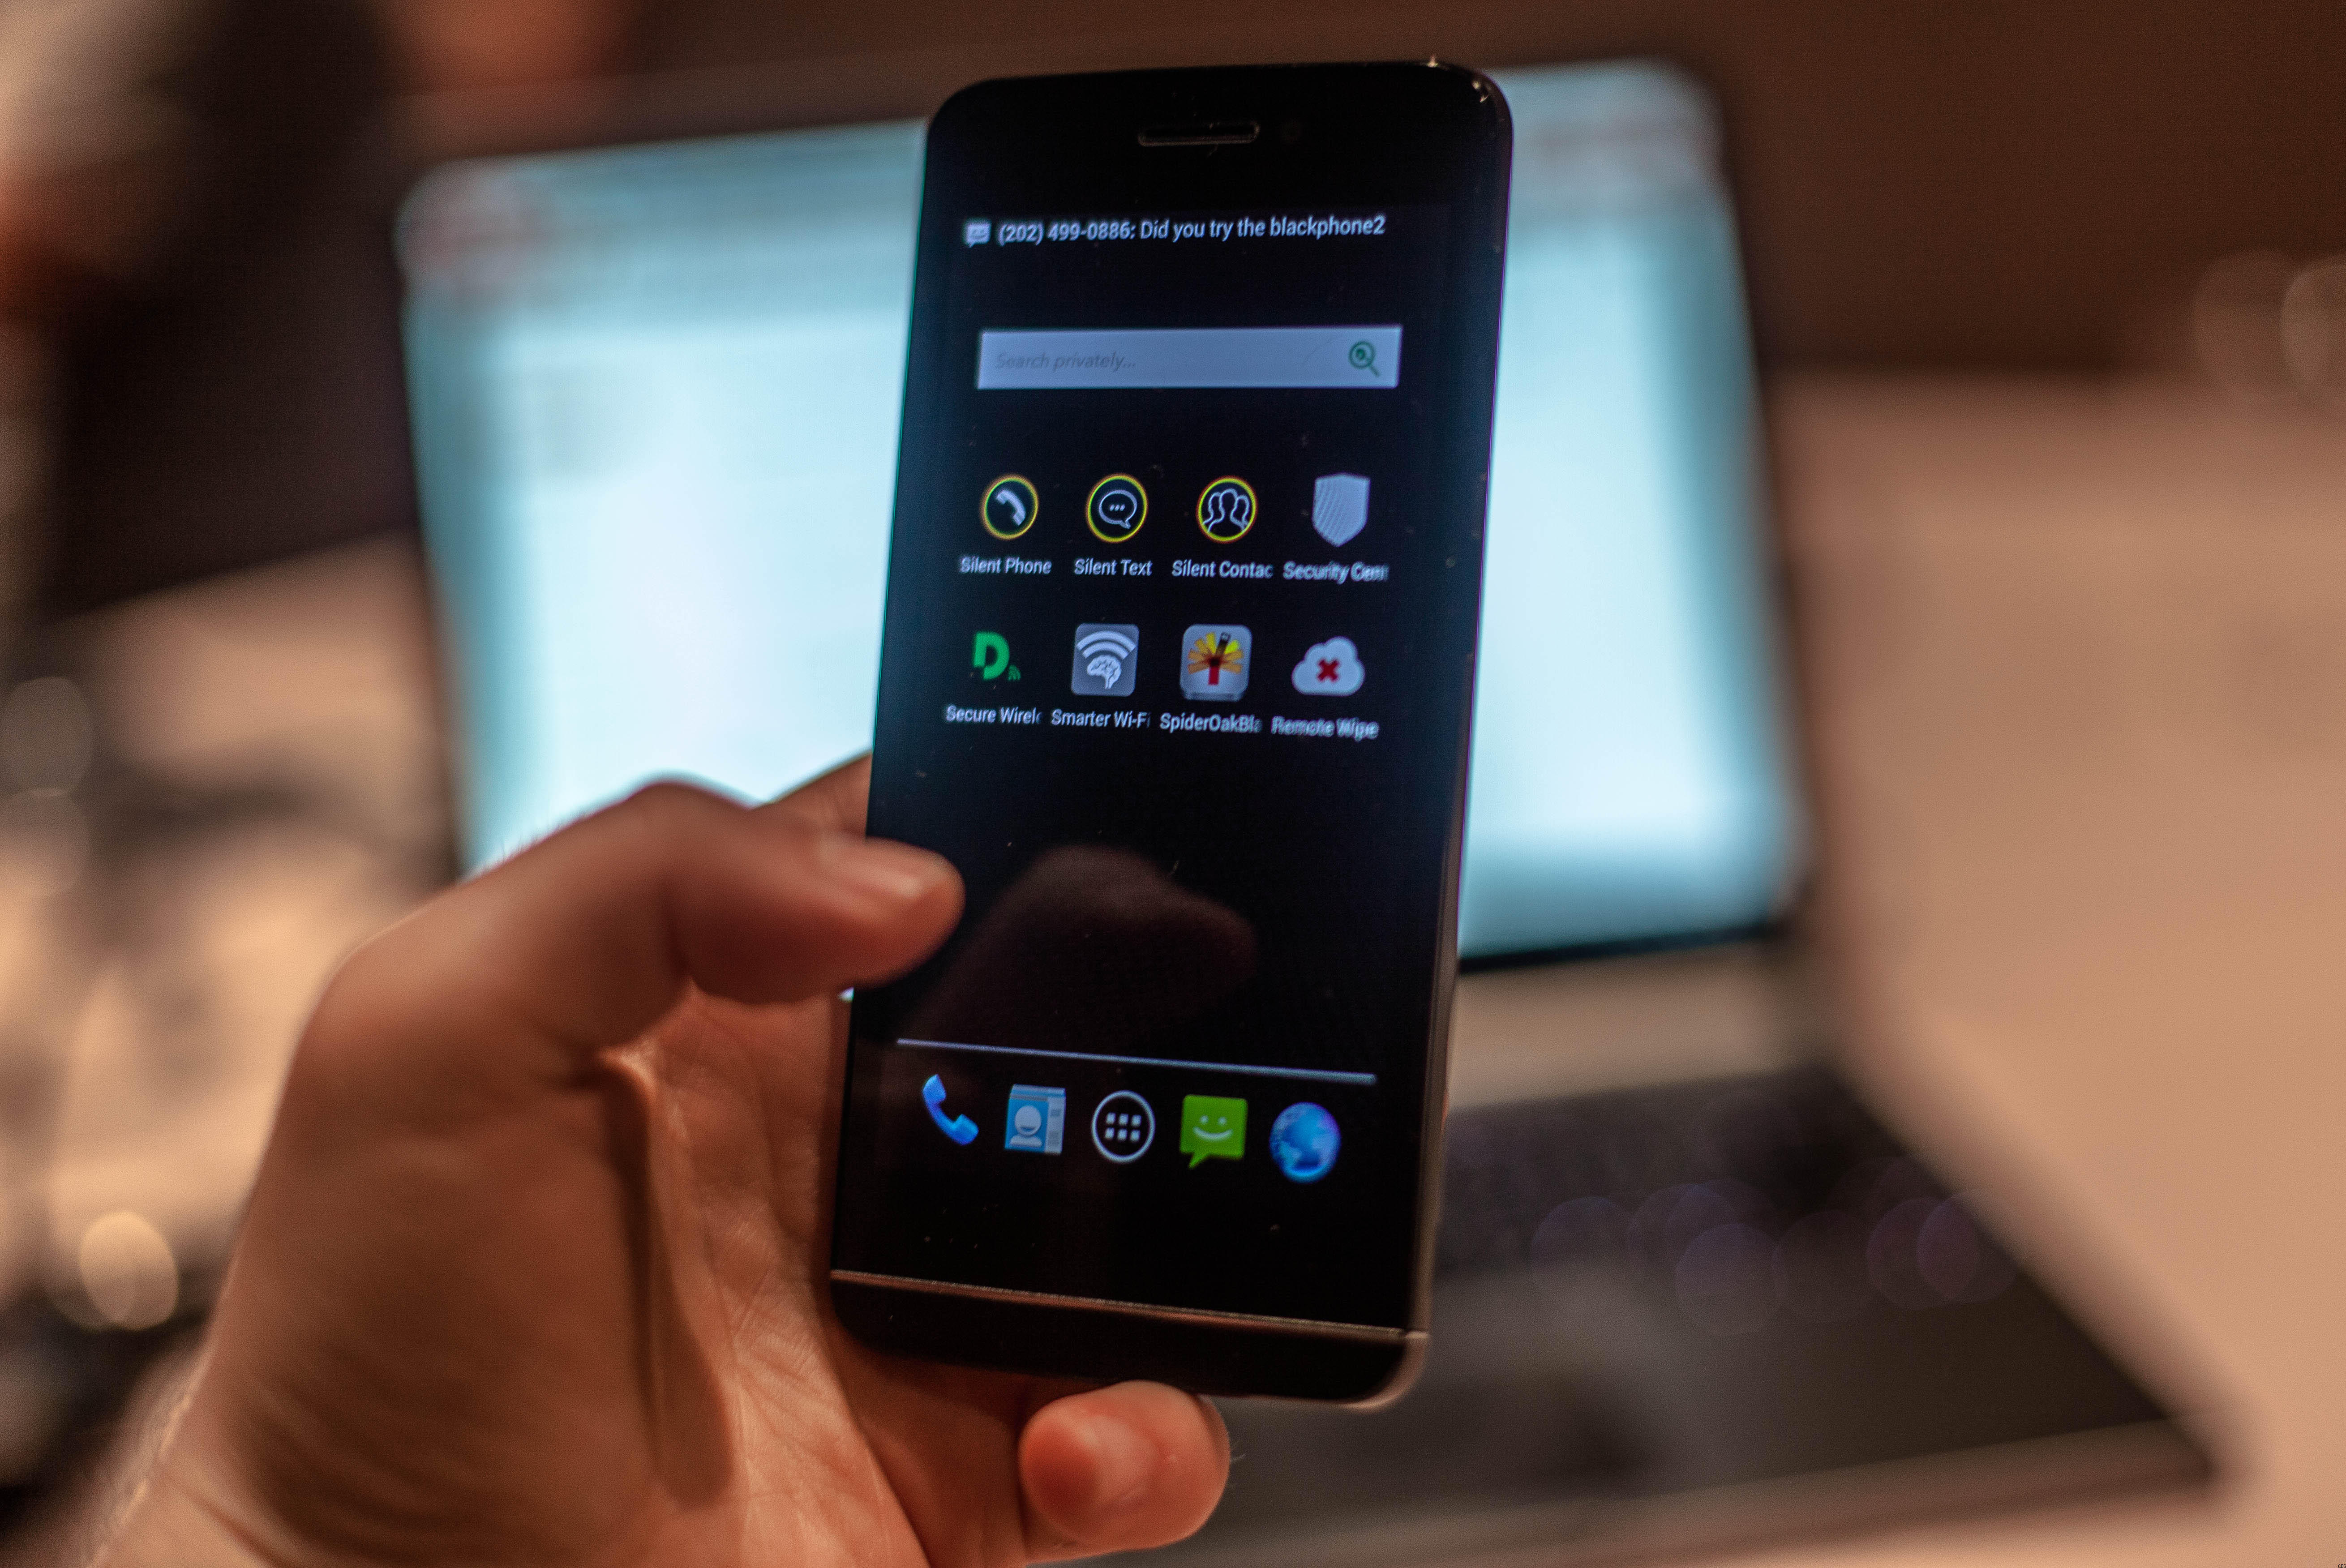 No black art to the Blackphone's quest for smartphone privacy